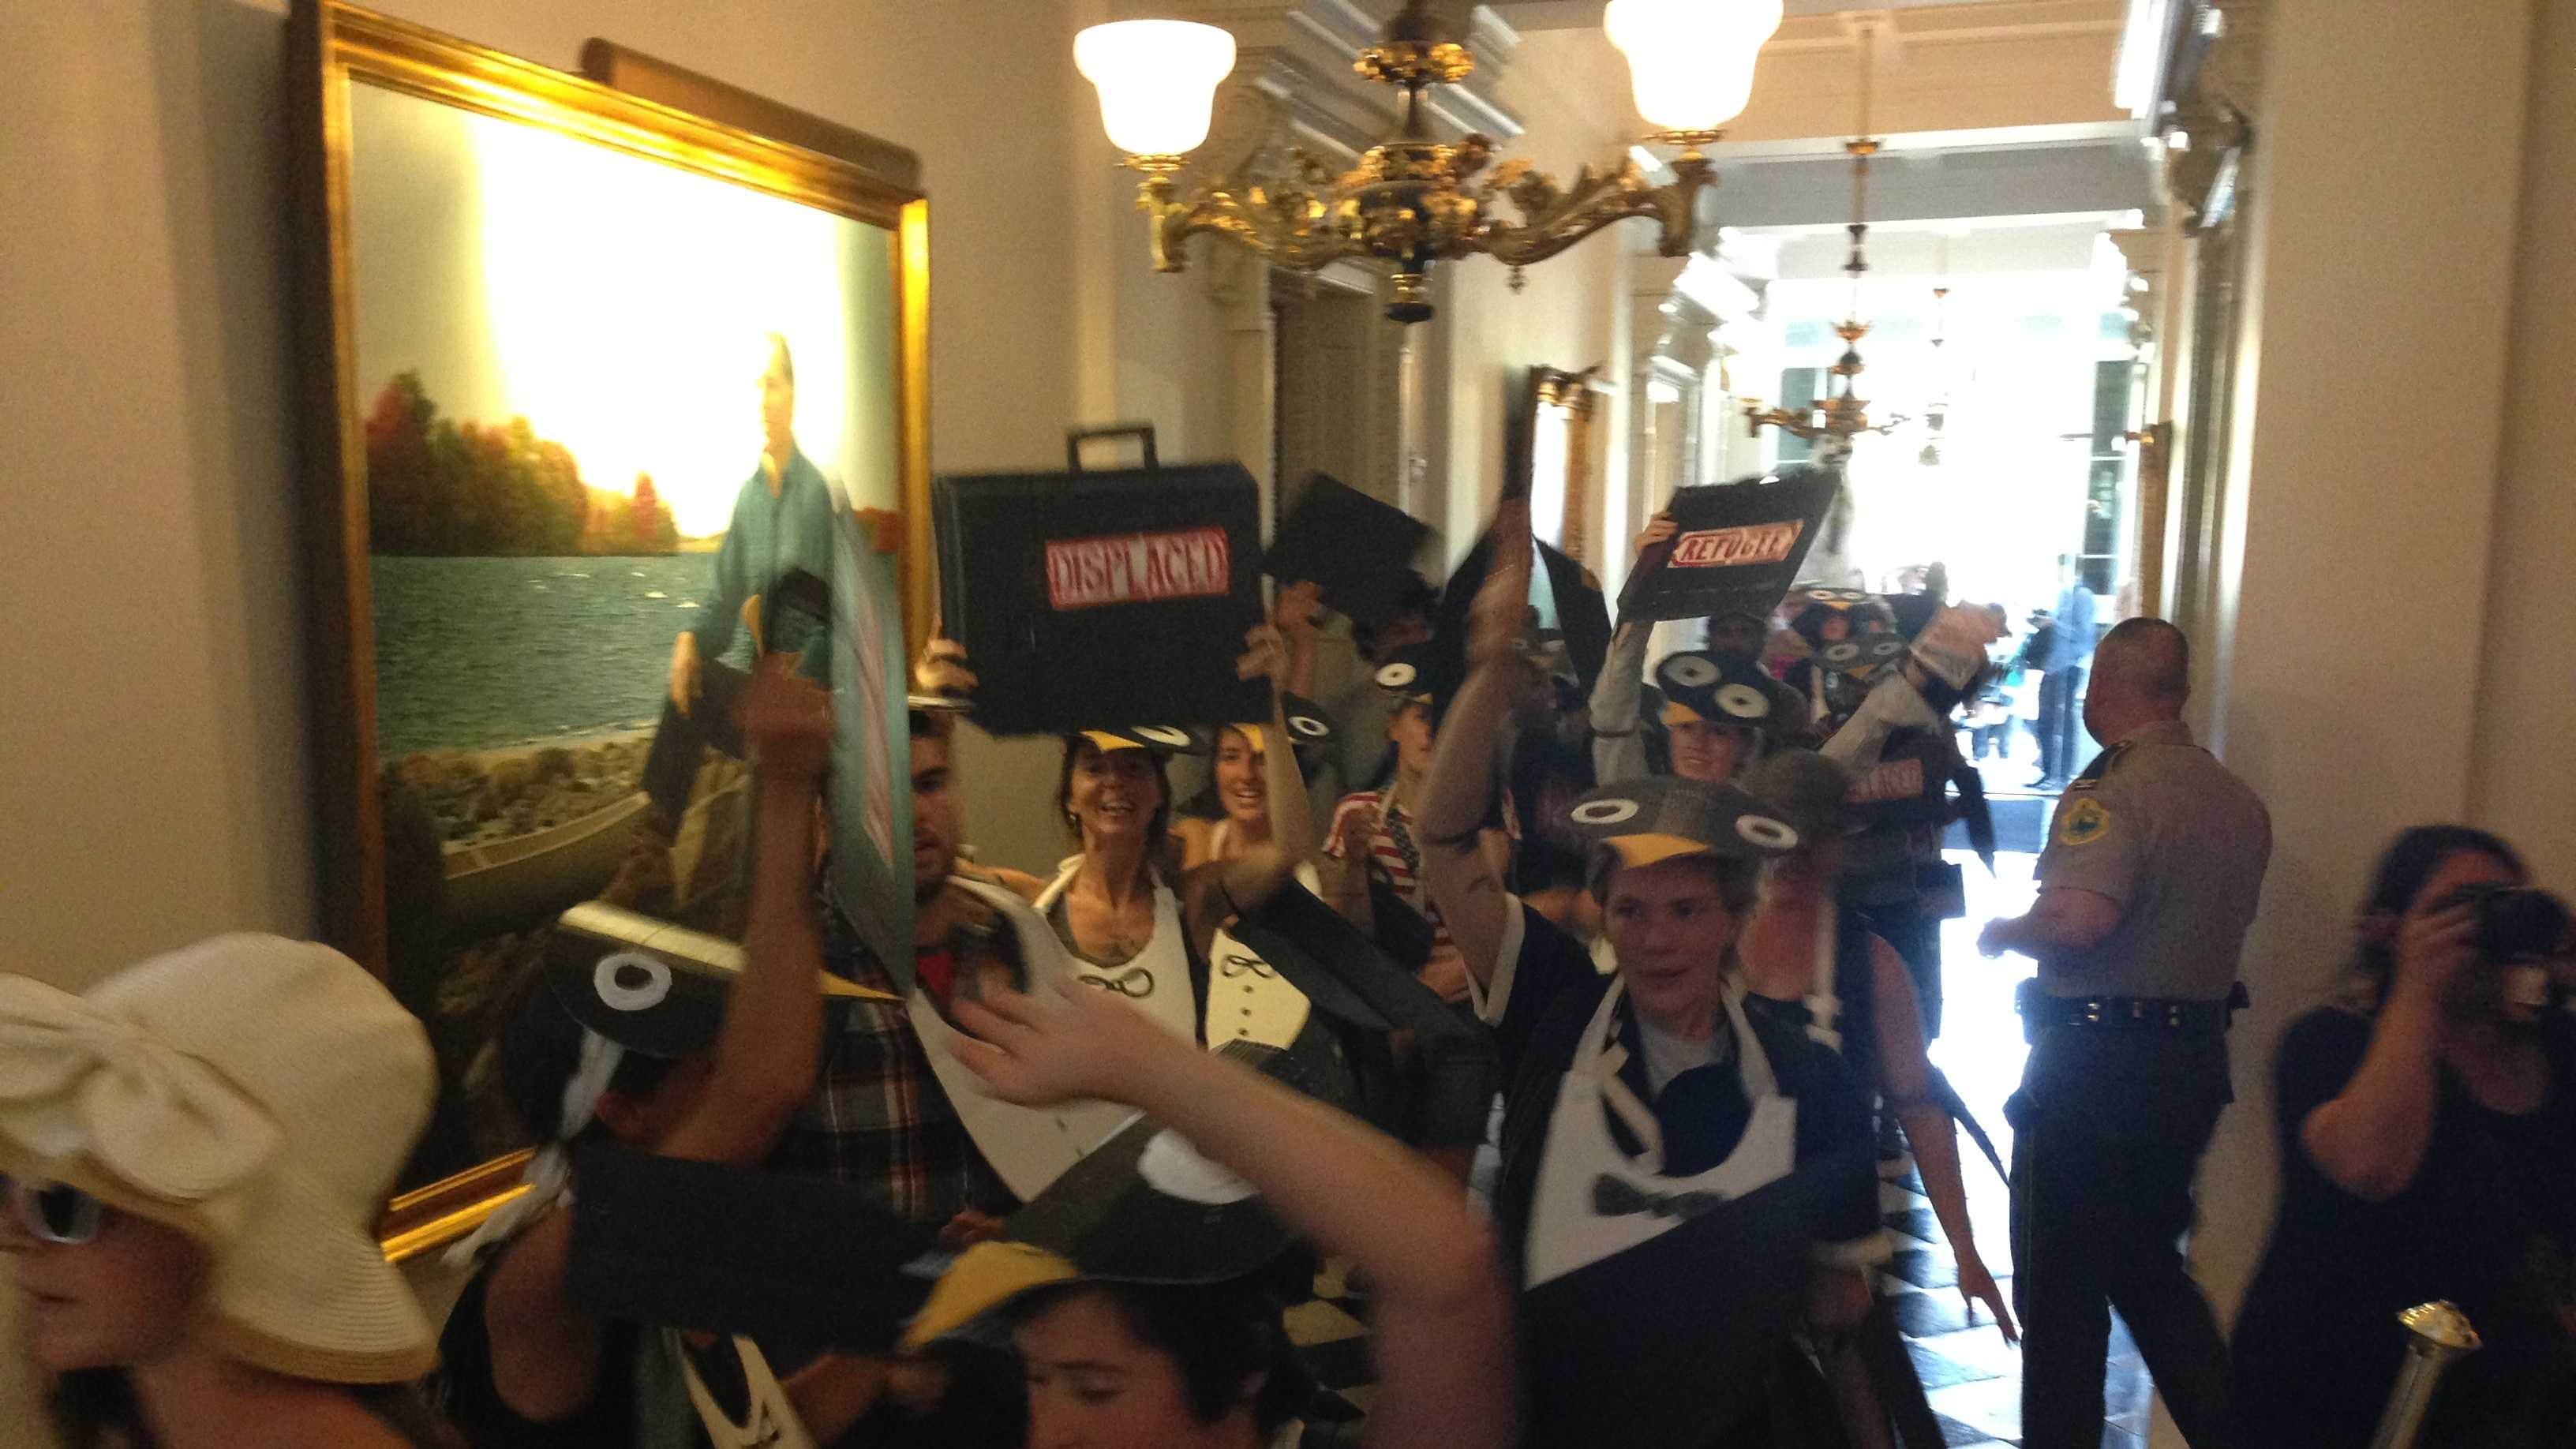 Members of the group Rising Tide stage a raucous protest at the Statehouse Monday, disrupting some hearings inside. The group is unhappy with Gov. Peter Shumlin for supporting budget cuts and a new natural gas pipeline.